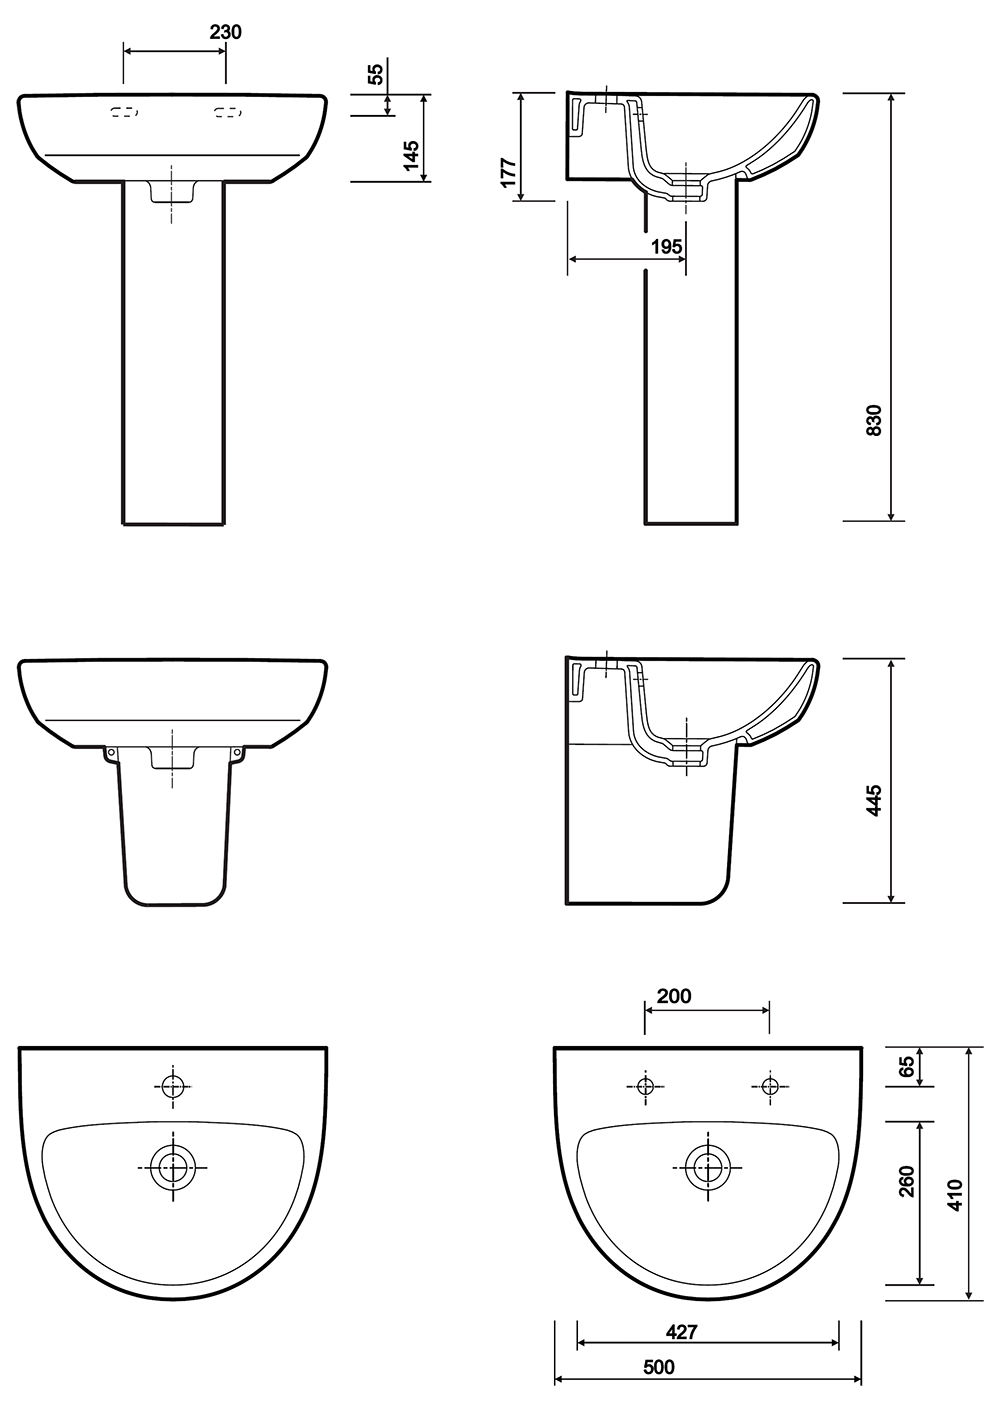 Images Of Bathrooms With Pedestal Sinks. Image Result For Images Of Bathrooms With Pedestal Sinks